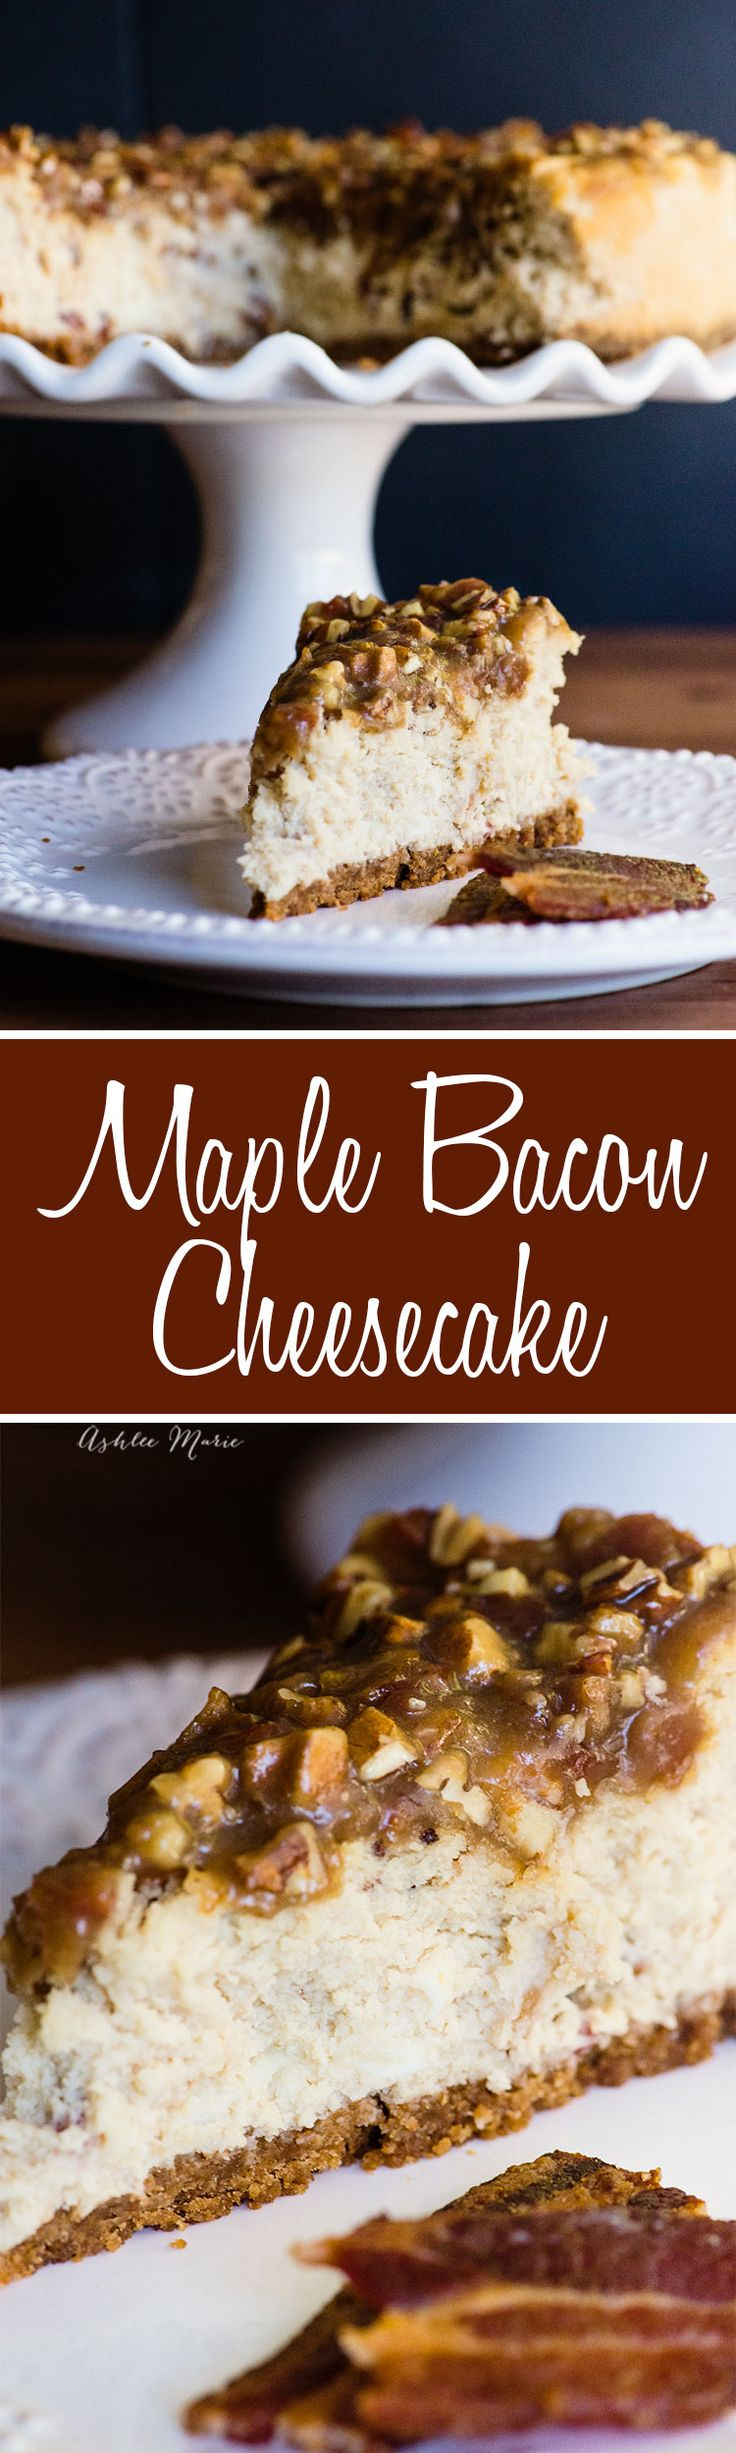 this maple bacon cheesecake recipe is delicious and easy to make - with tips and tricks for the perfect cheesecake and a video tutorial